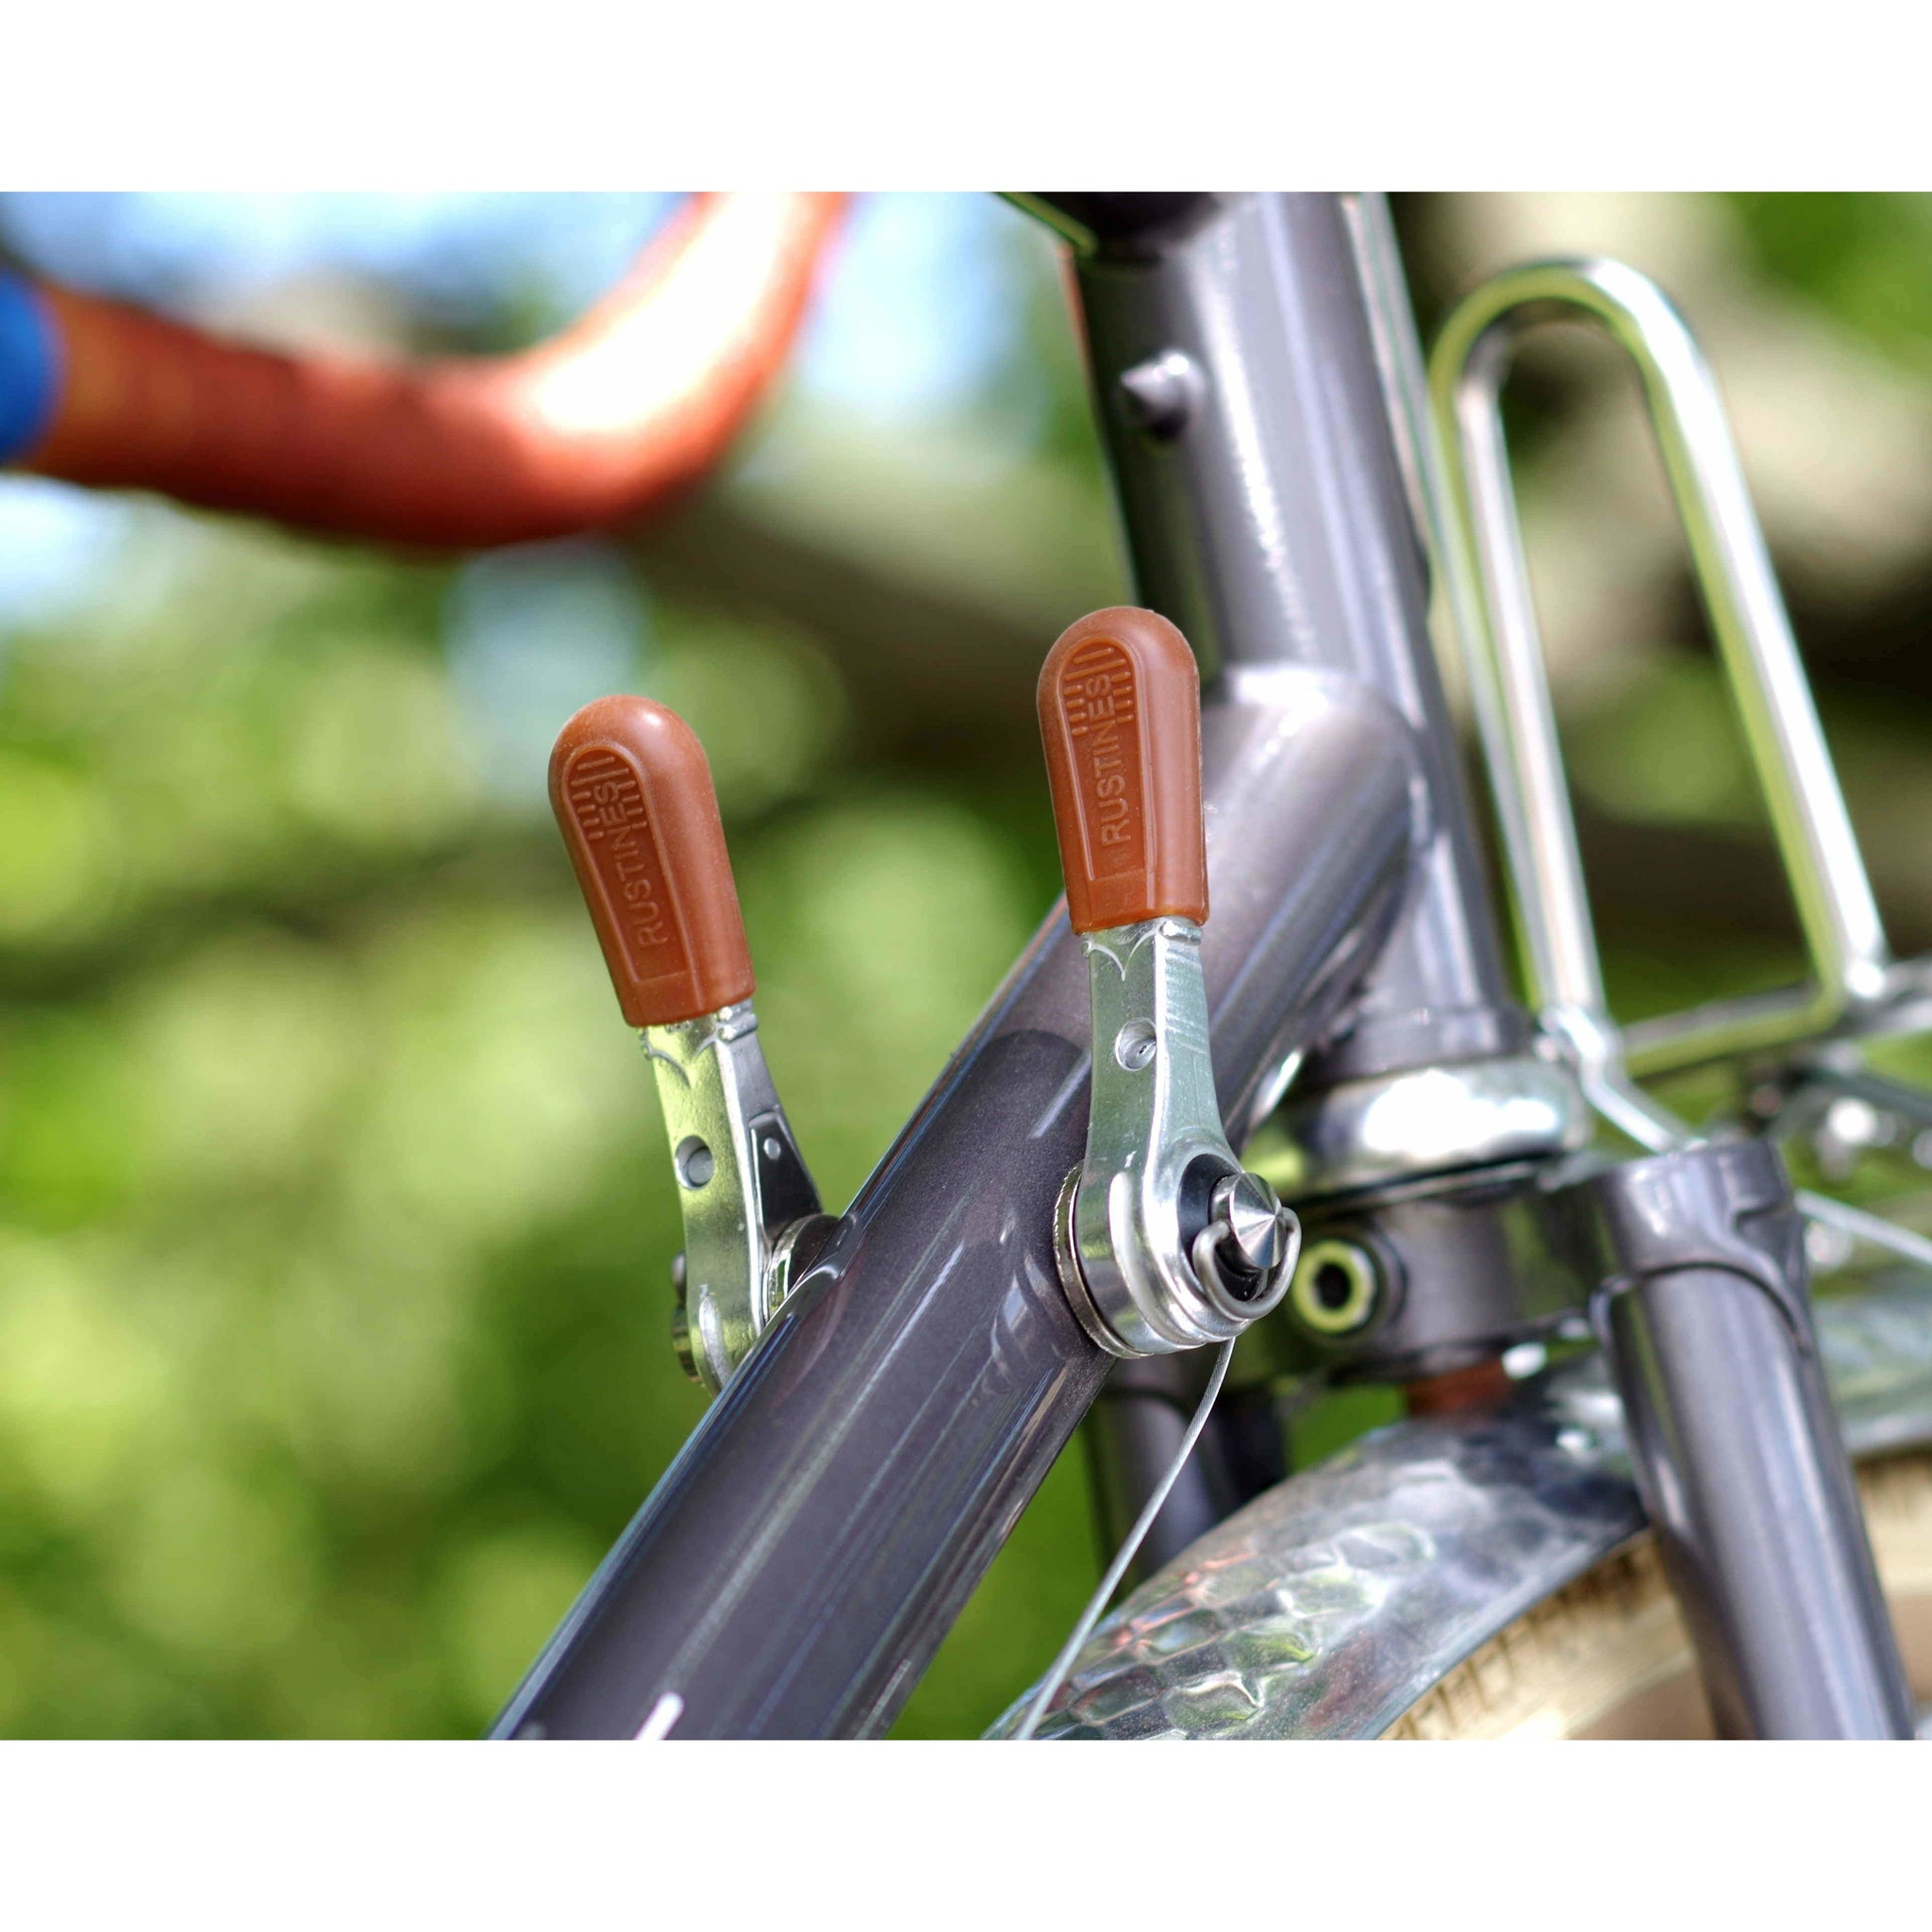 Rustines Downtube Shifter Covers